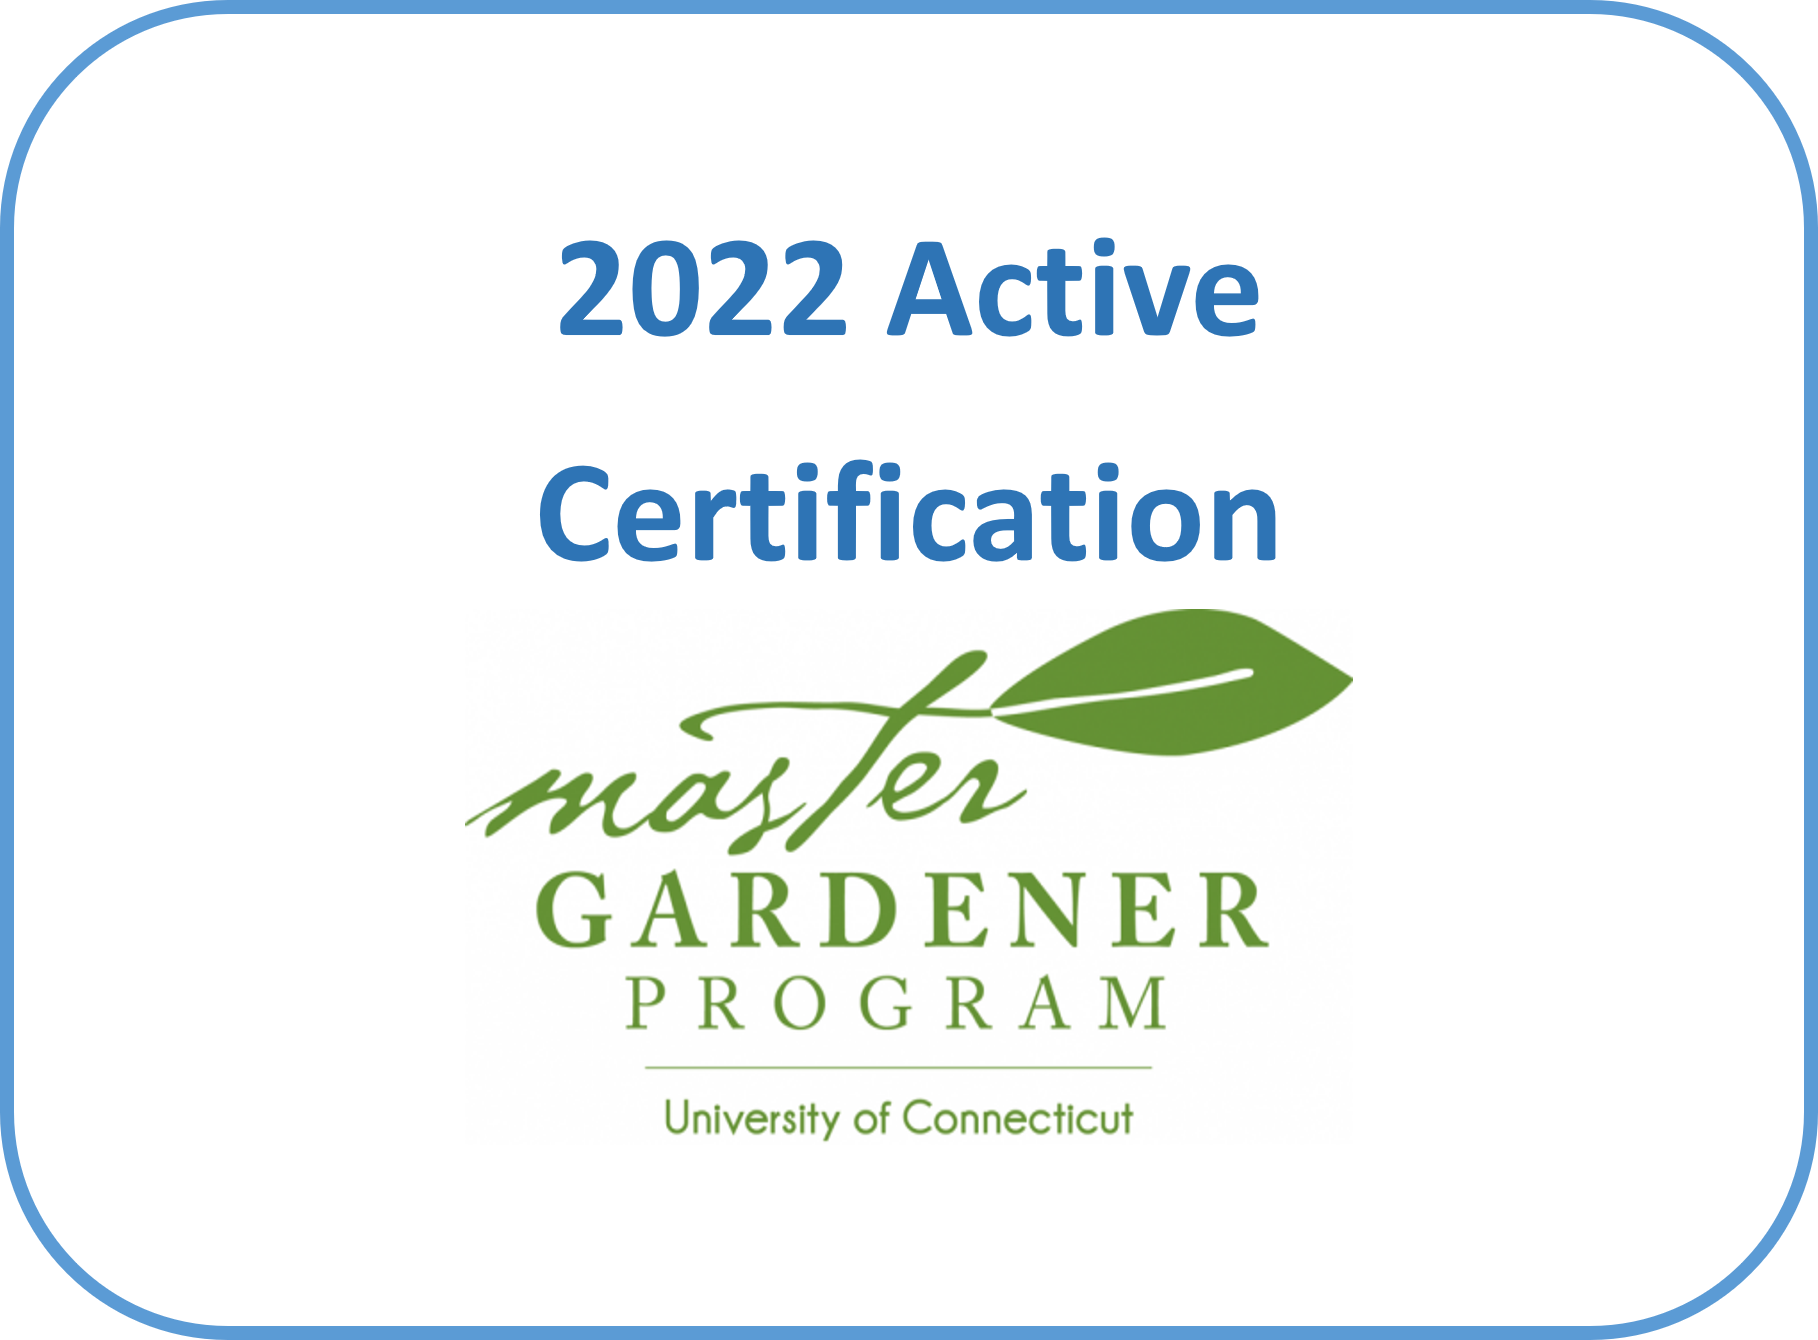 Active Certification 2022 - New London